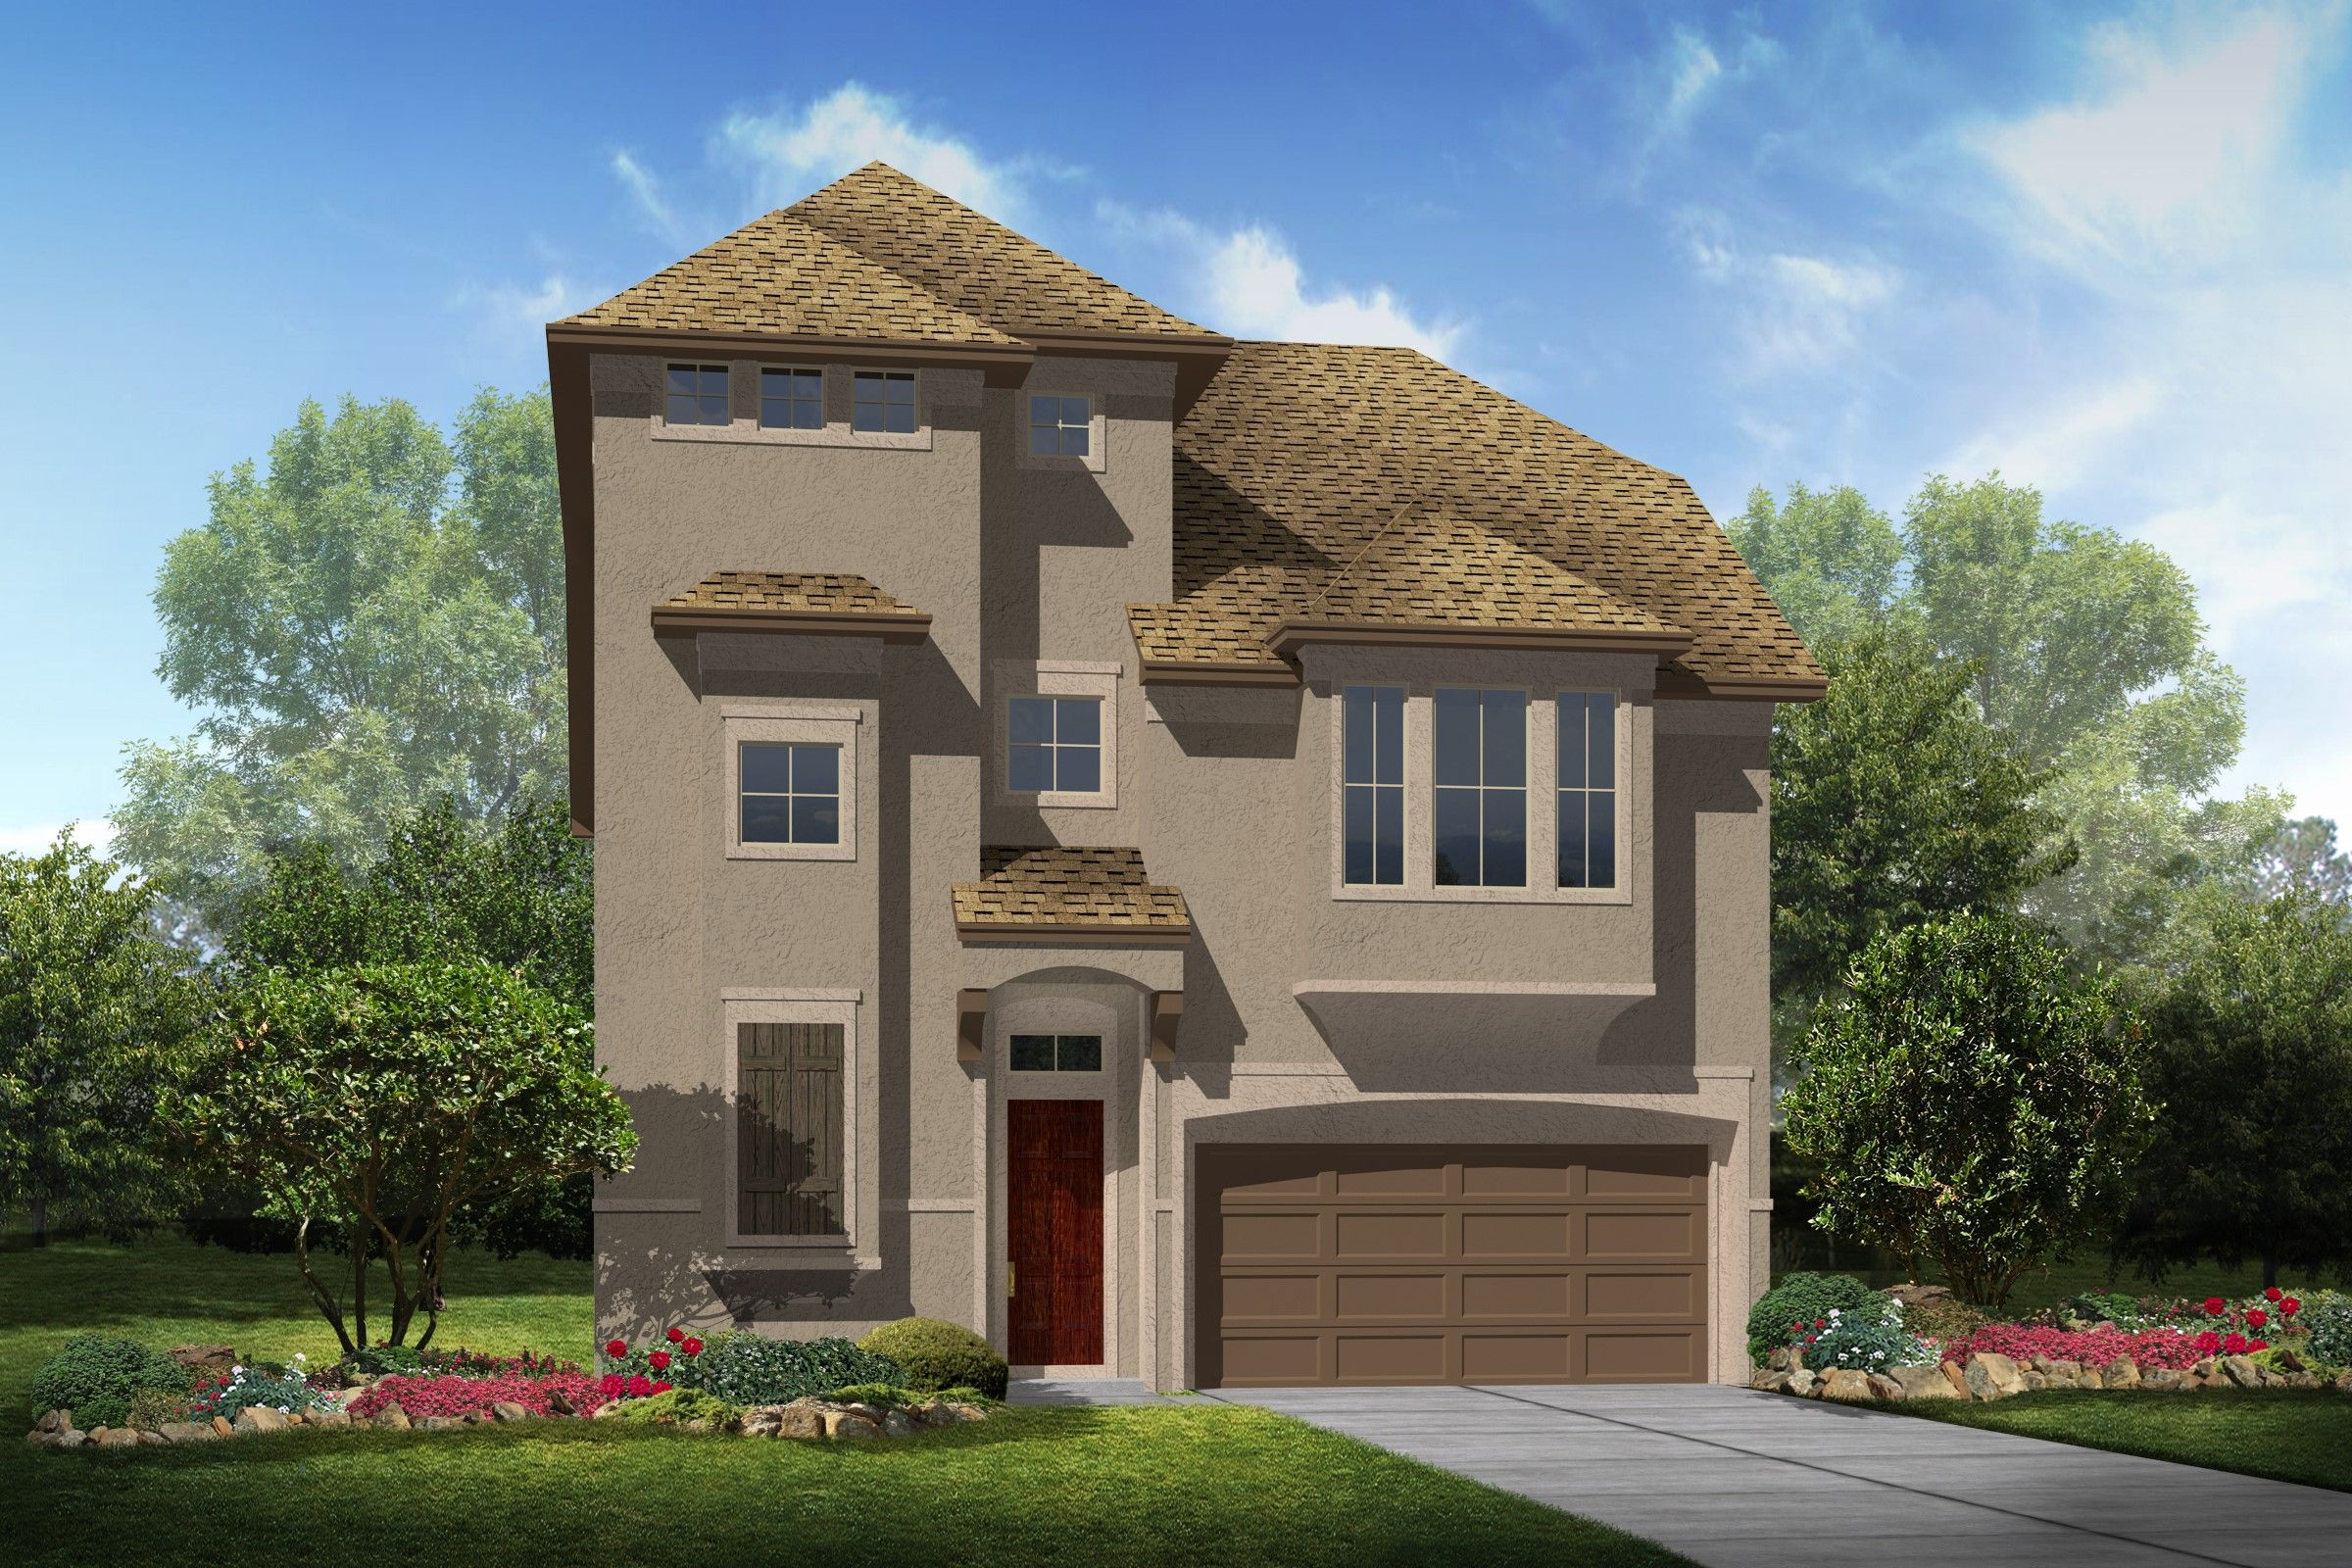 Single Family for Sale at Parkway Terrace - Ava 2109 Westbourne Park Drive Houston, Texas 77077 United States